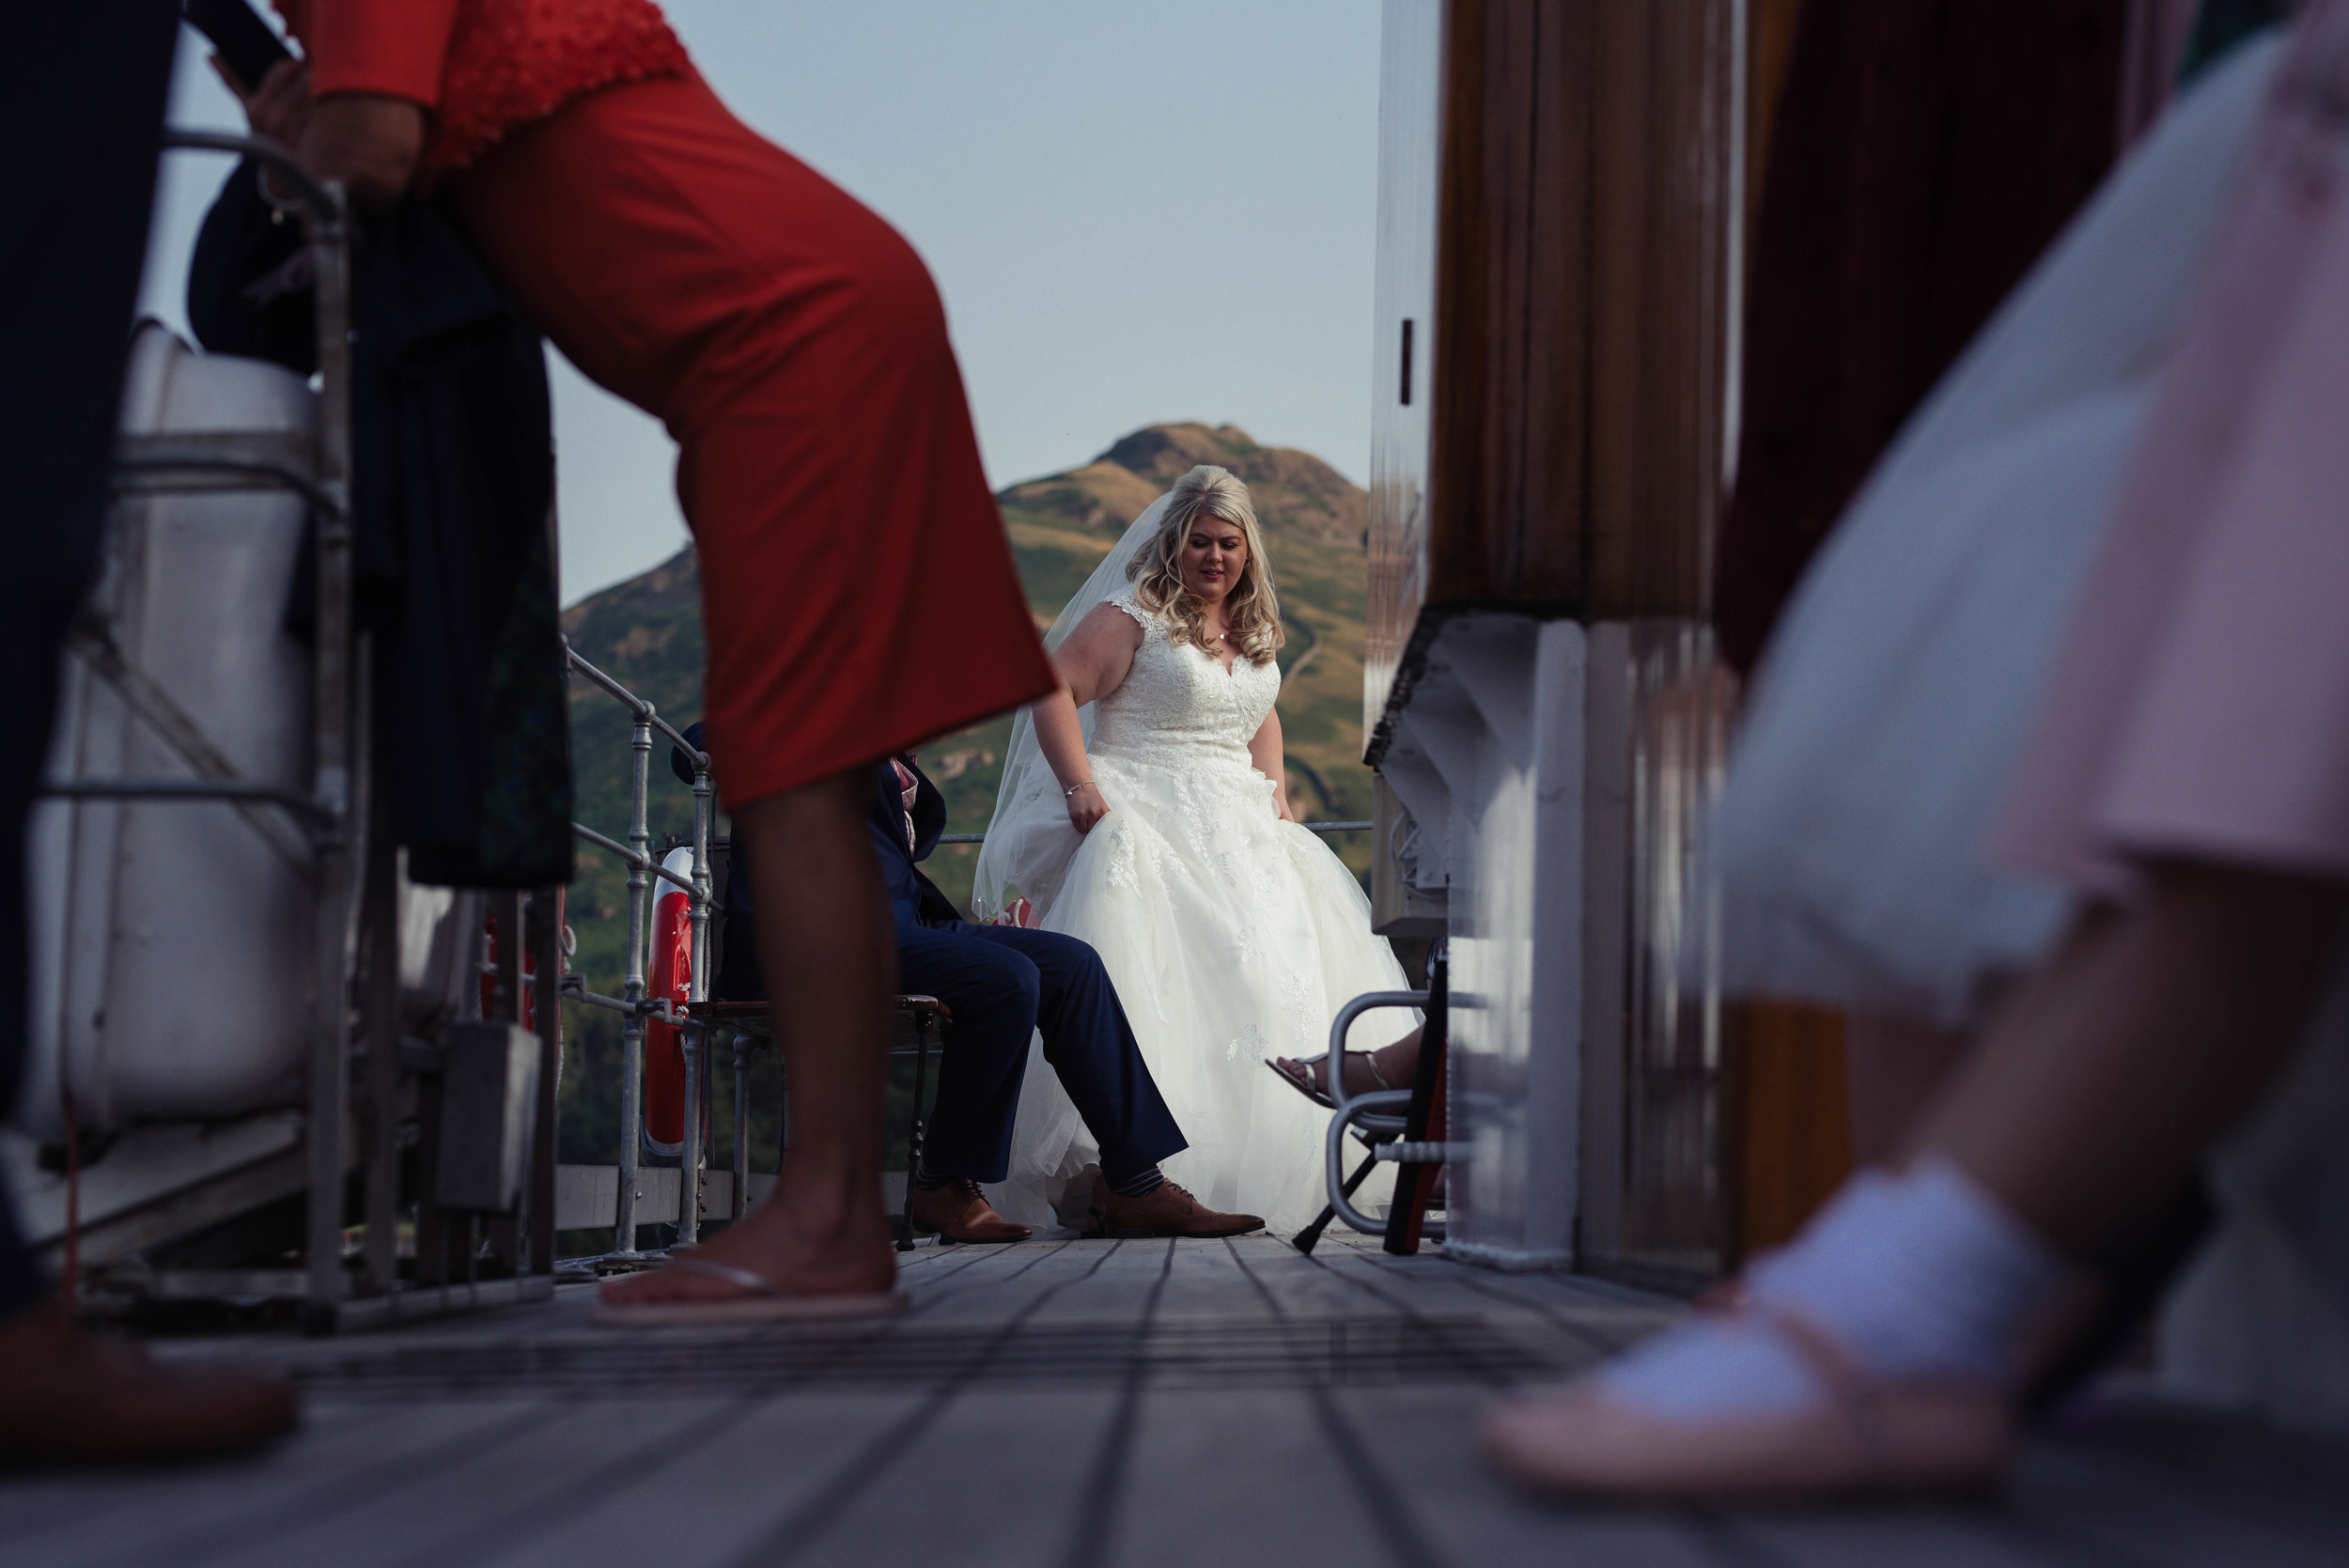 The bride standing on the ullswater steamer